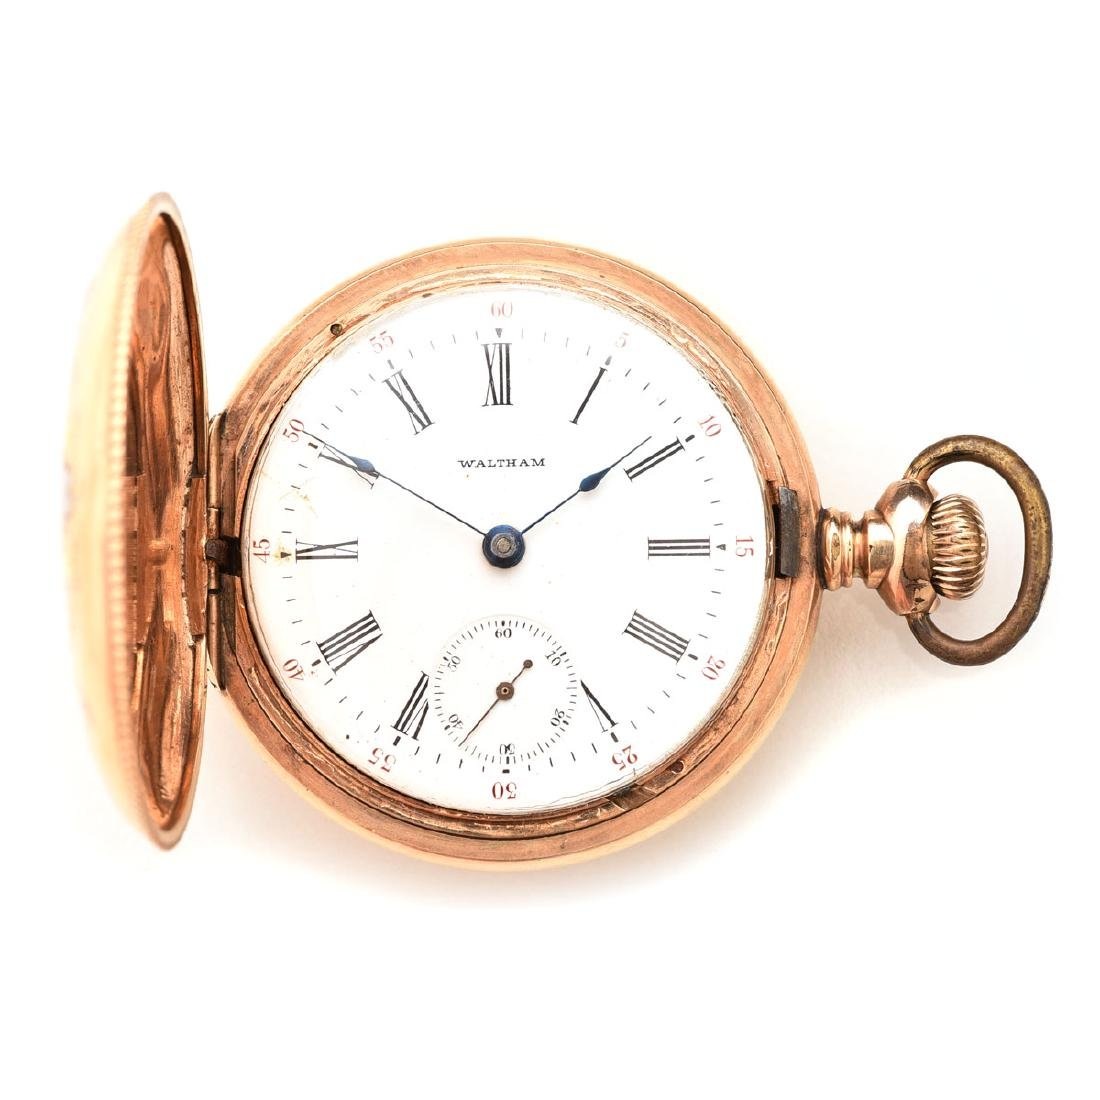 Waltham, 14k Gold, Pocket Watch.